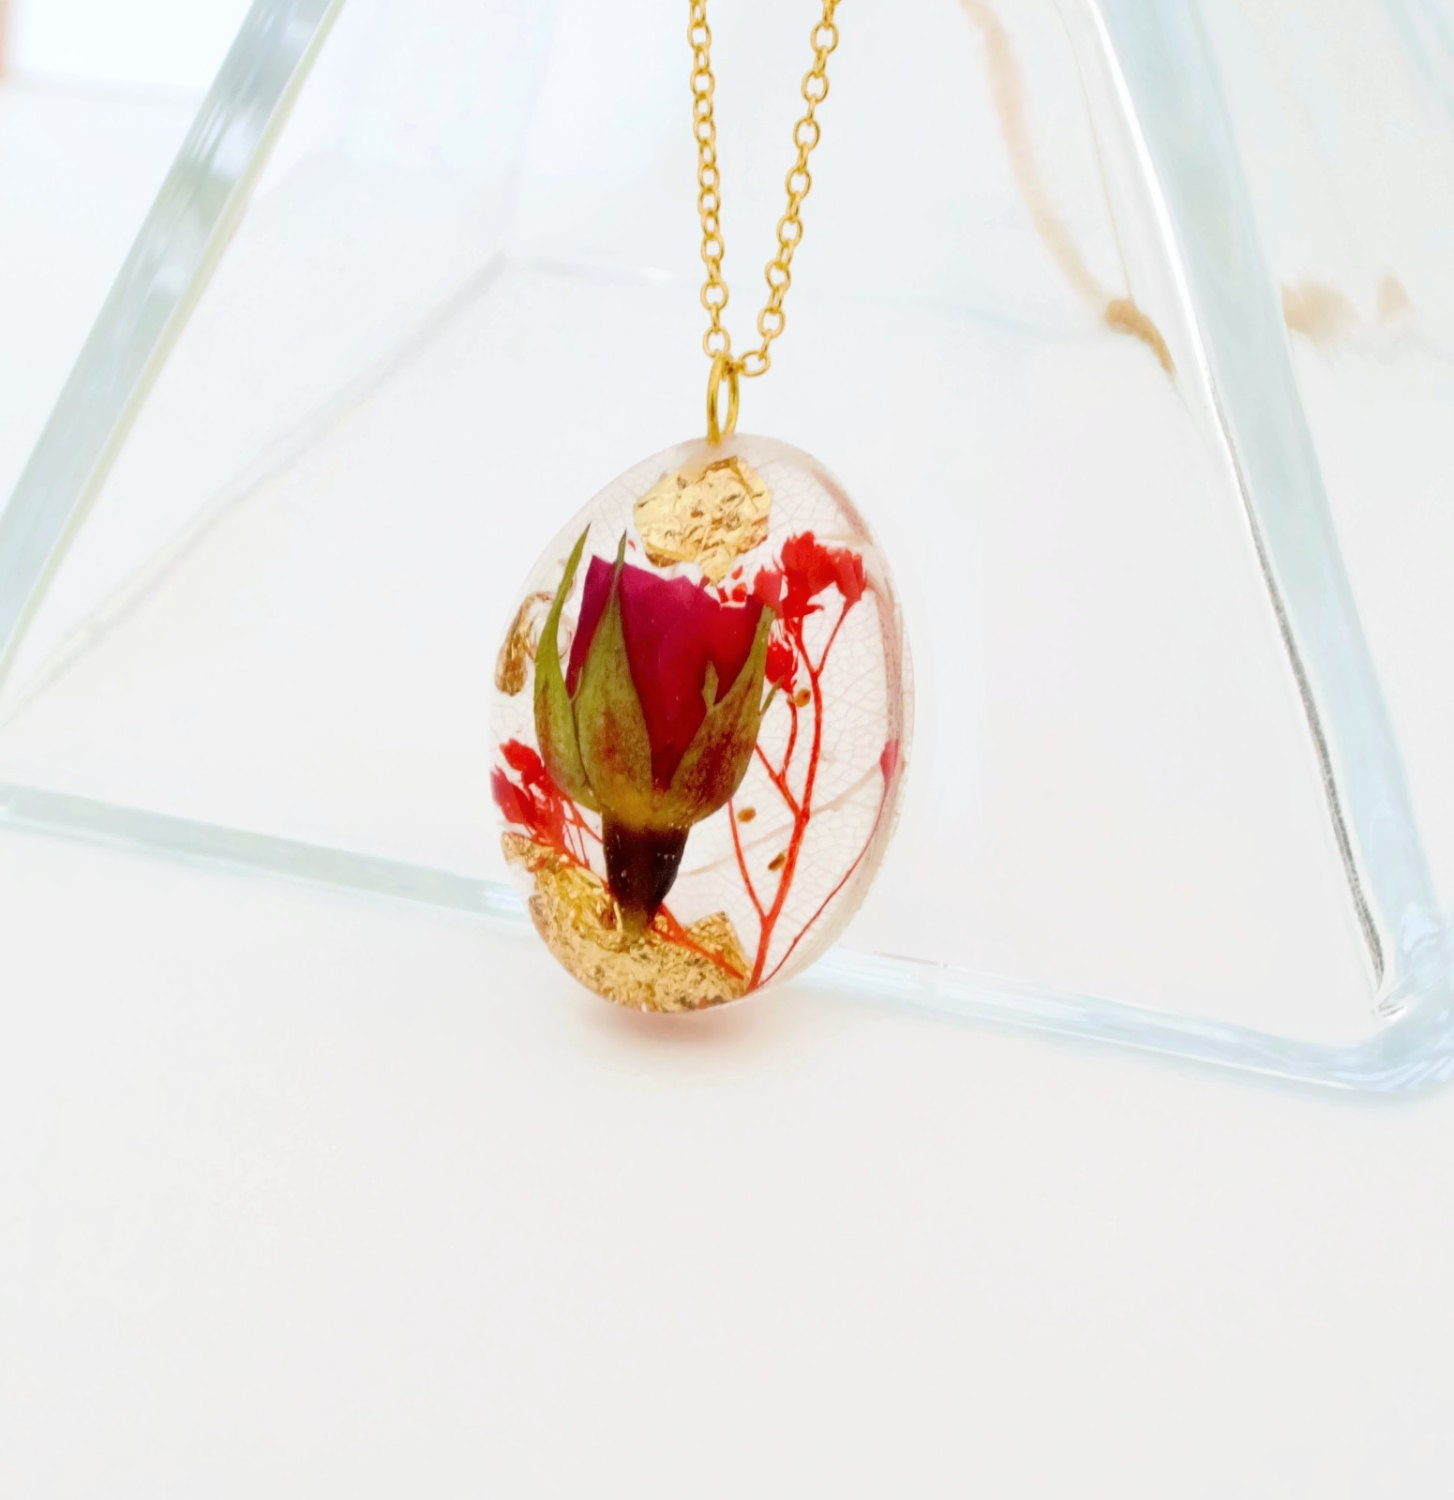 Communication on this topic: How to Make a Leaf Shaped Necklace, how-to-make-a-leaf-shaped-necklace/